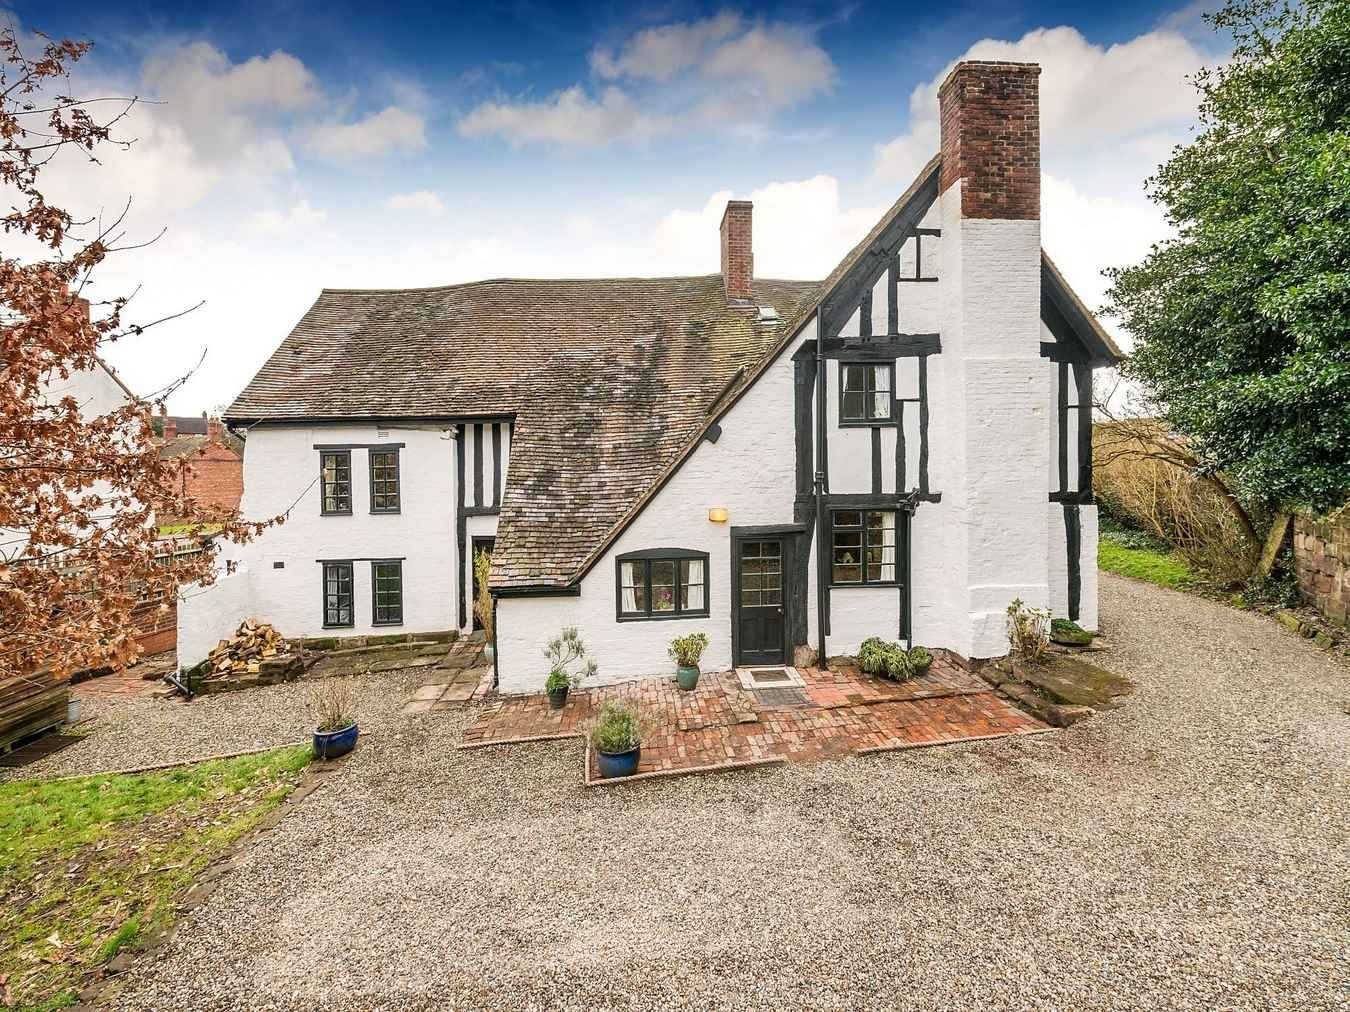 14th Century   Shropshire, England   $822,520   Old House Dreams